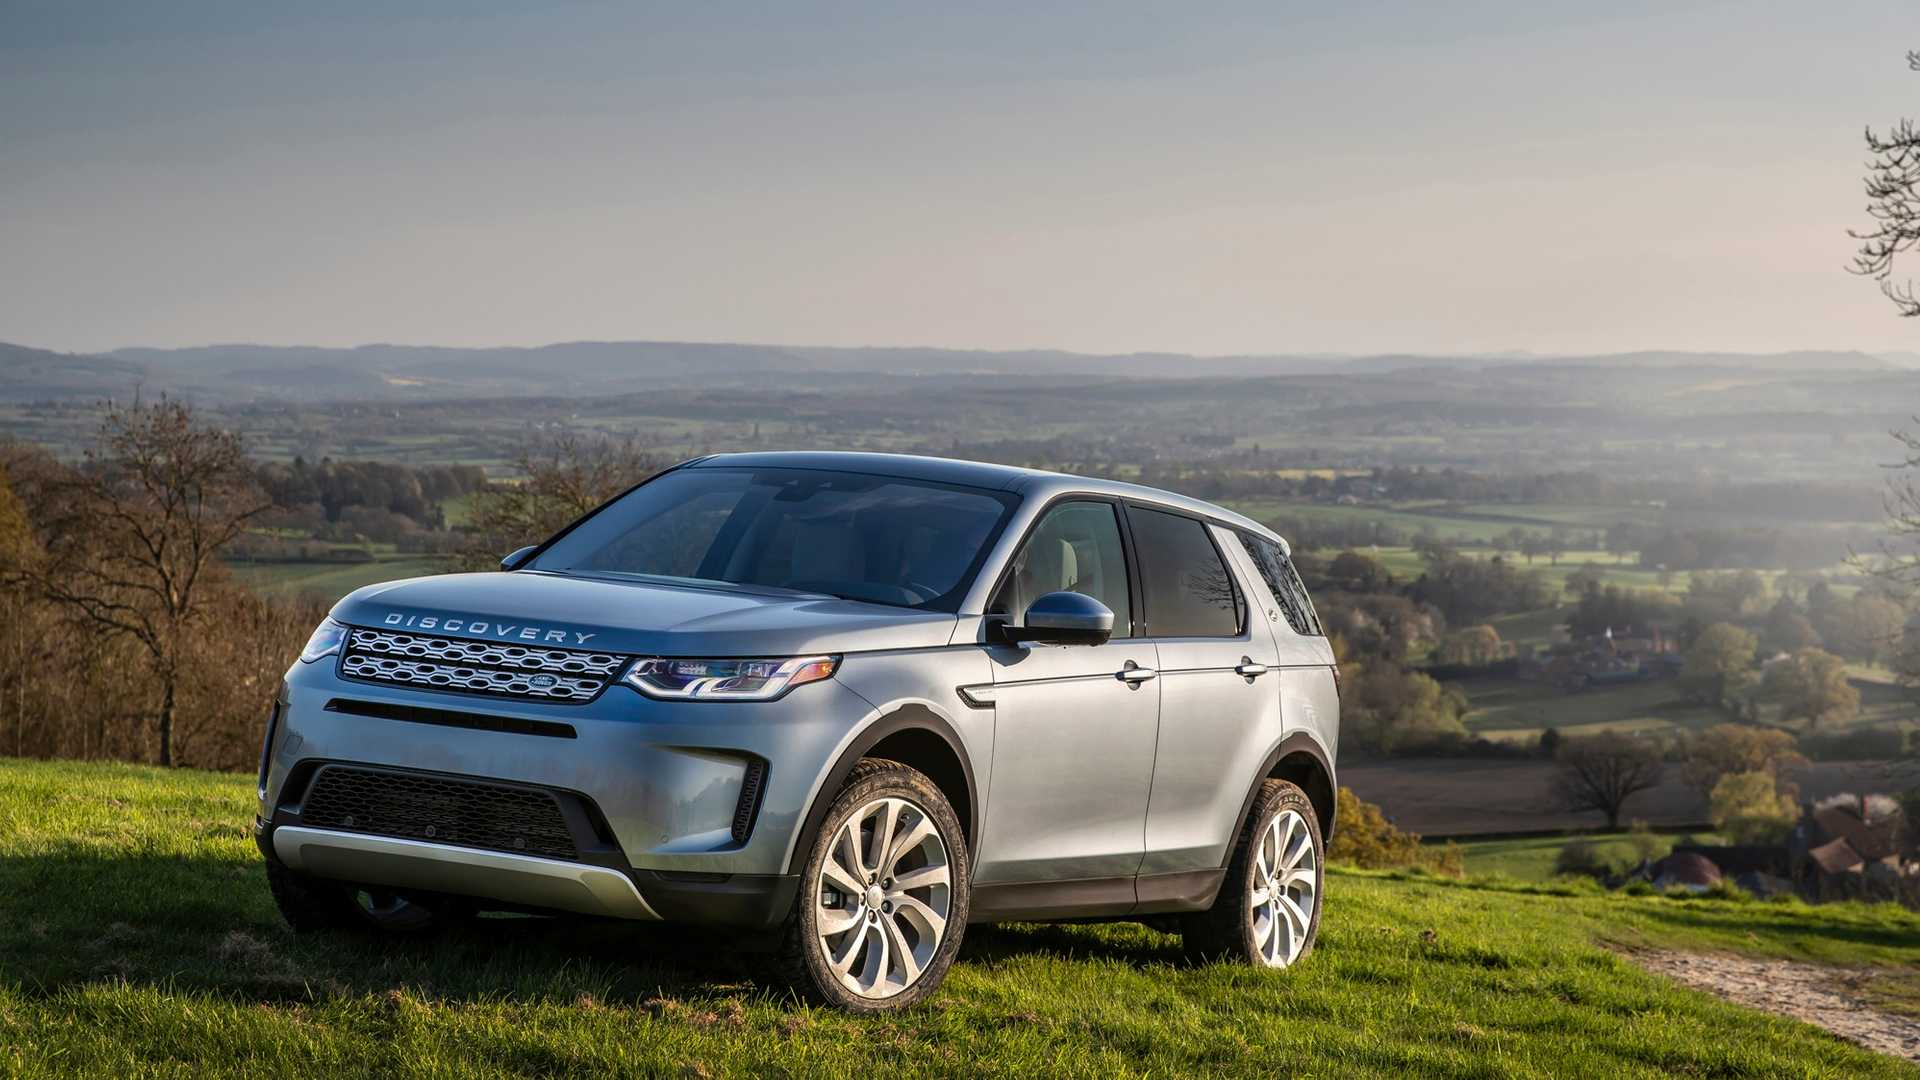 2020-land-rover-discovery-sport (25).jpg